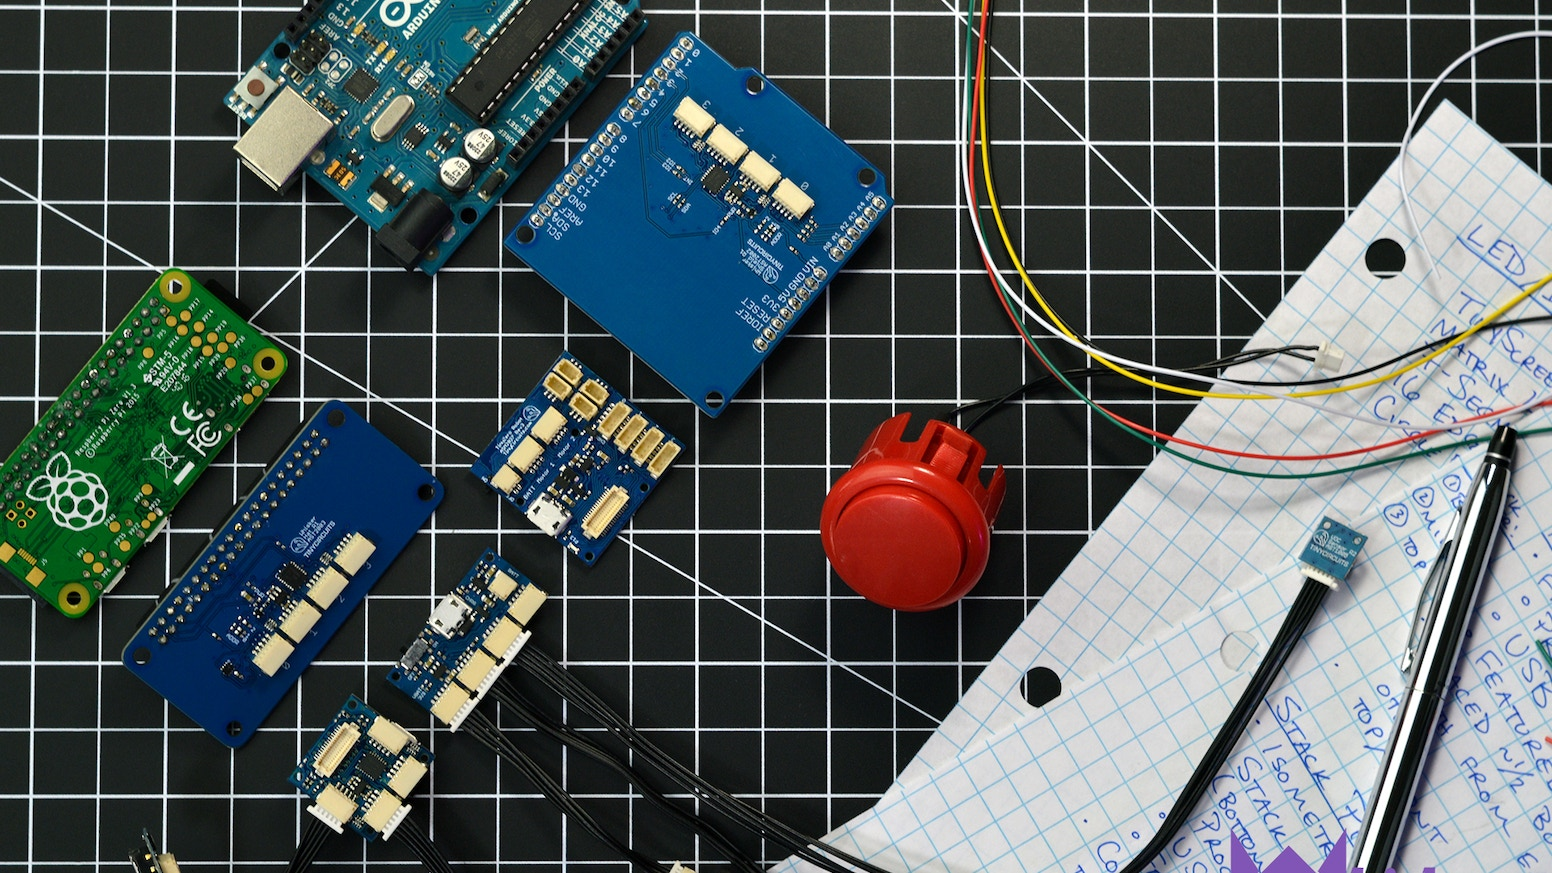 Whiskers by TinyCircuits are new teeny - tiny form factor boards created to add new capabilities to your projects in a big way!